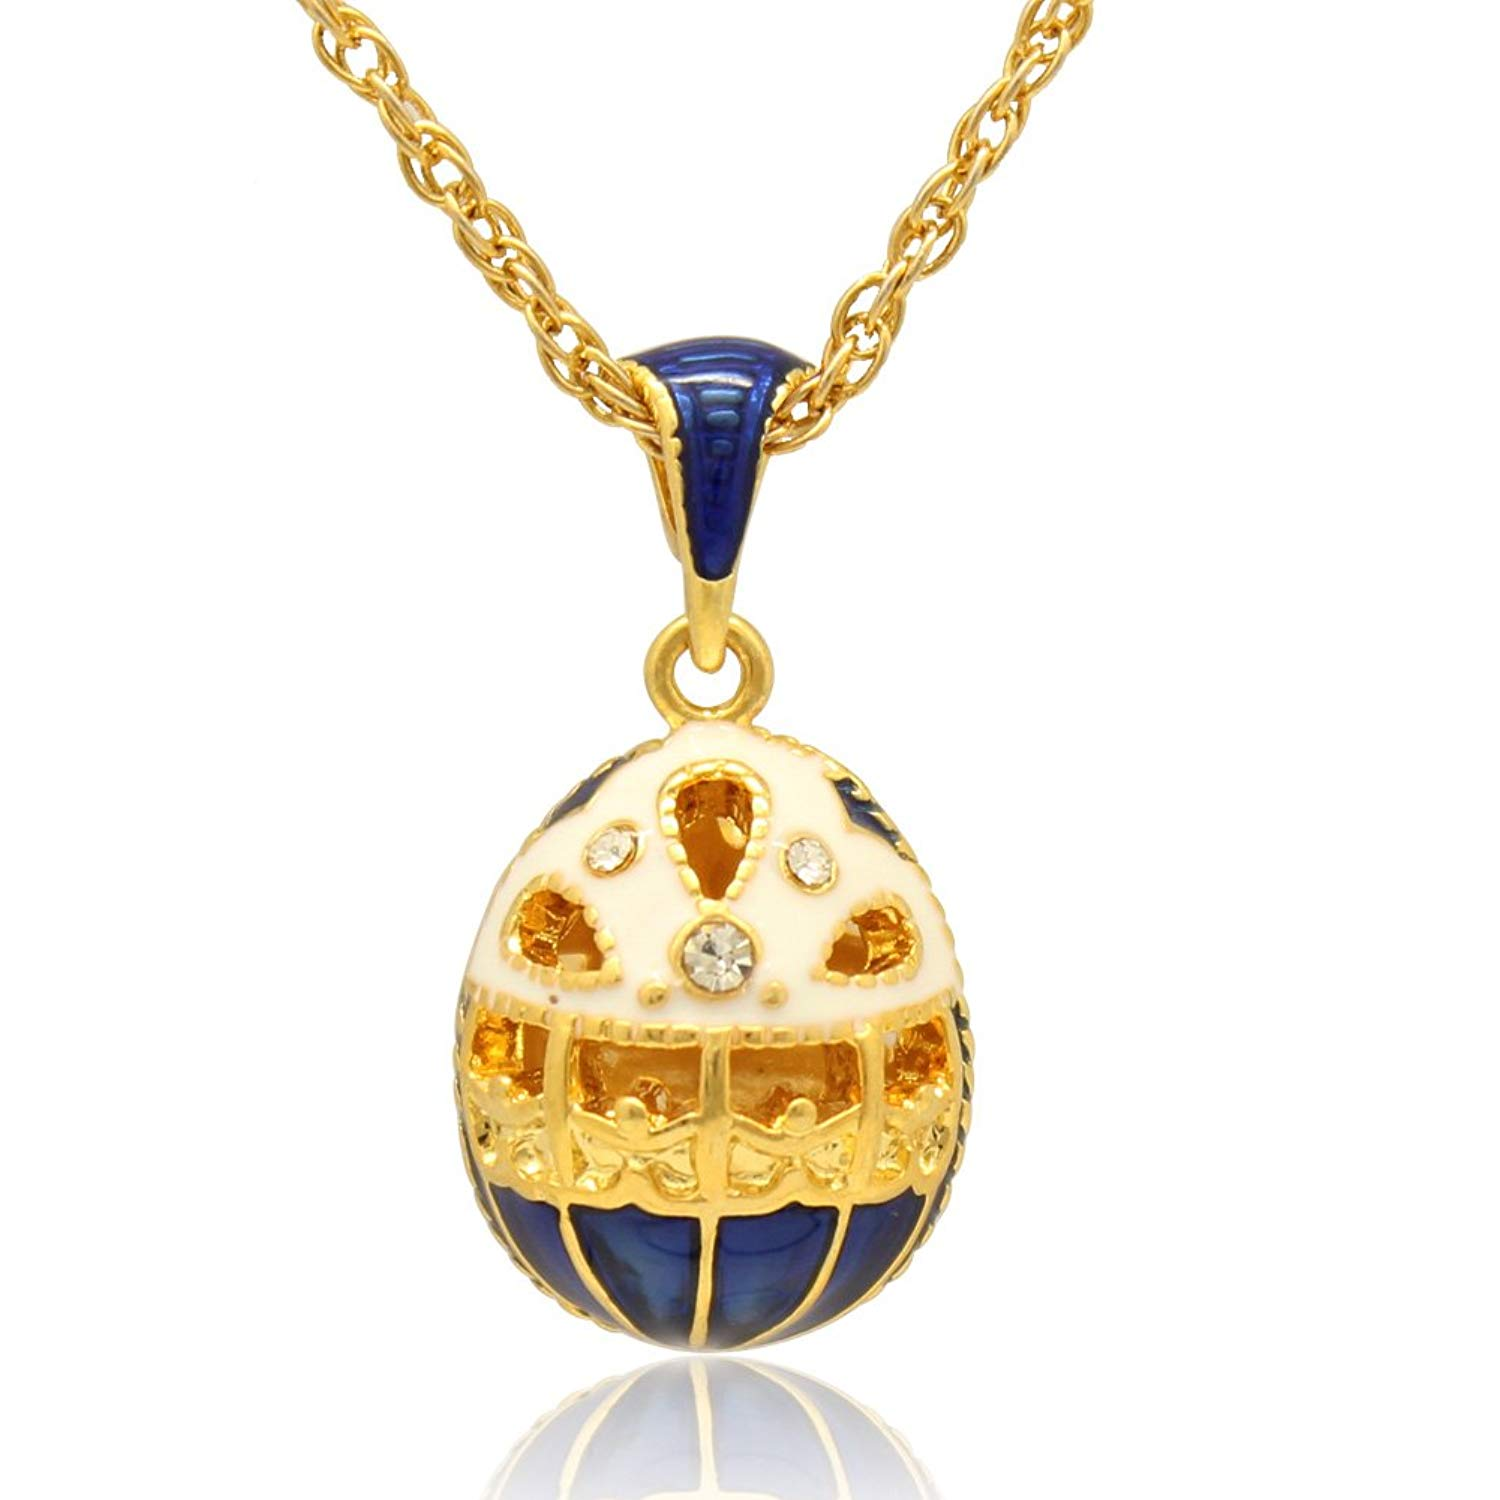 MYD Jewelry Enamel Hollow Design Easter Egg Faberge Egg Pendant Necklace